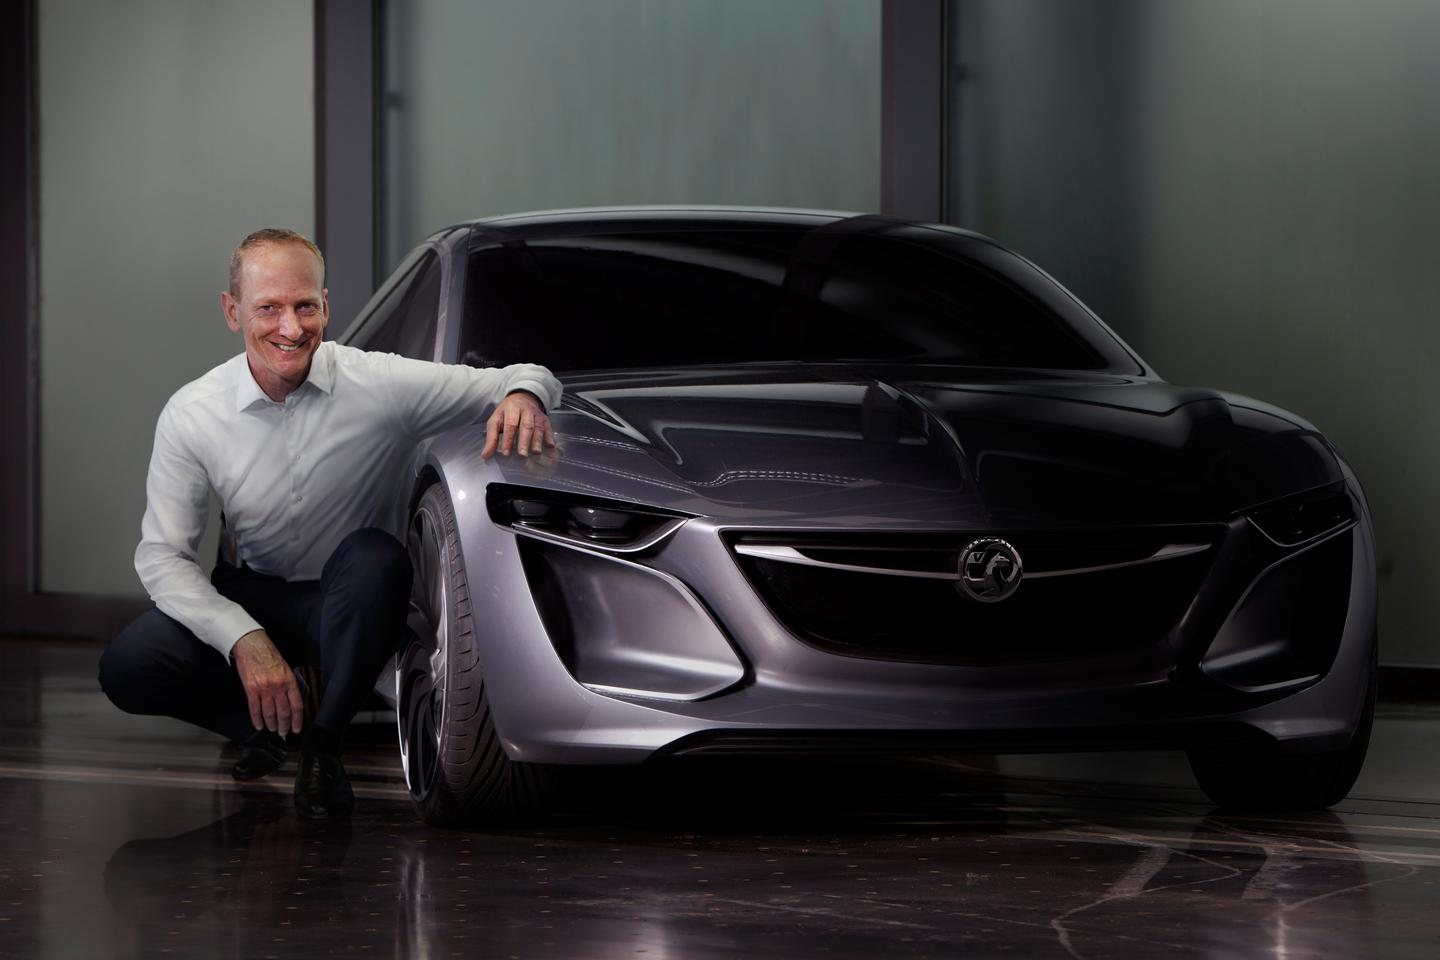 Vauxhall CEO Dr. Karl-Thomas Neumann, with the Monza Concept